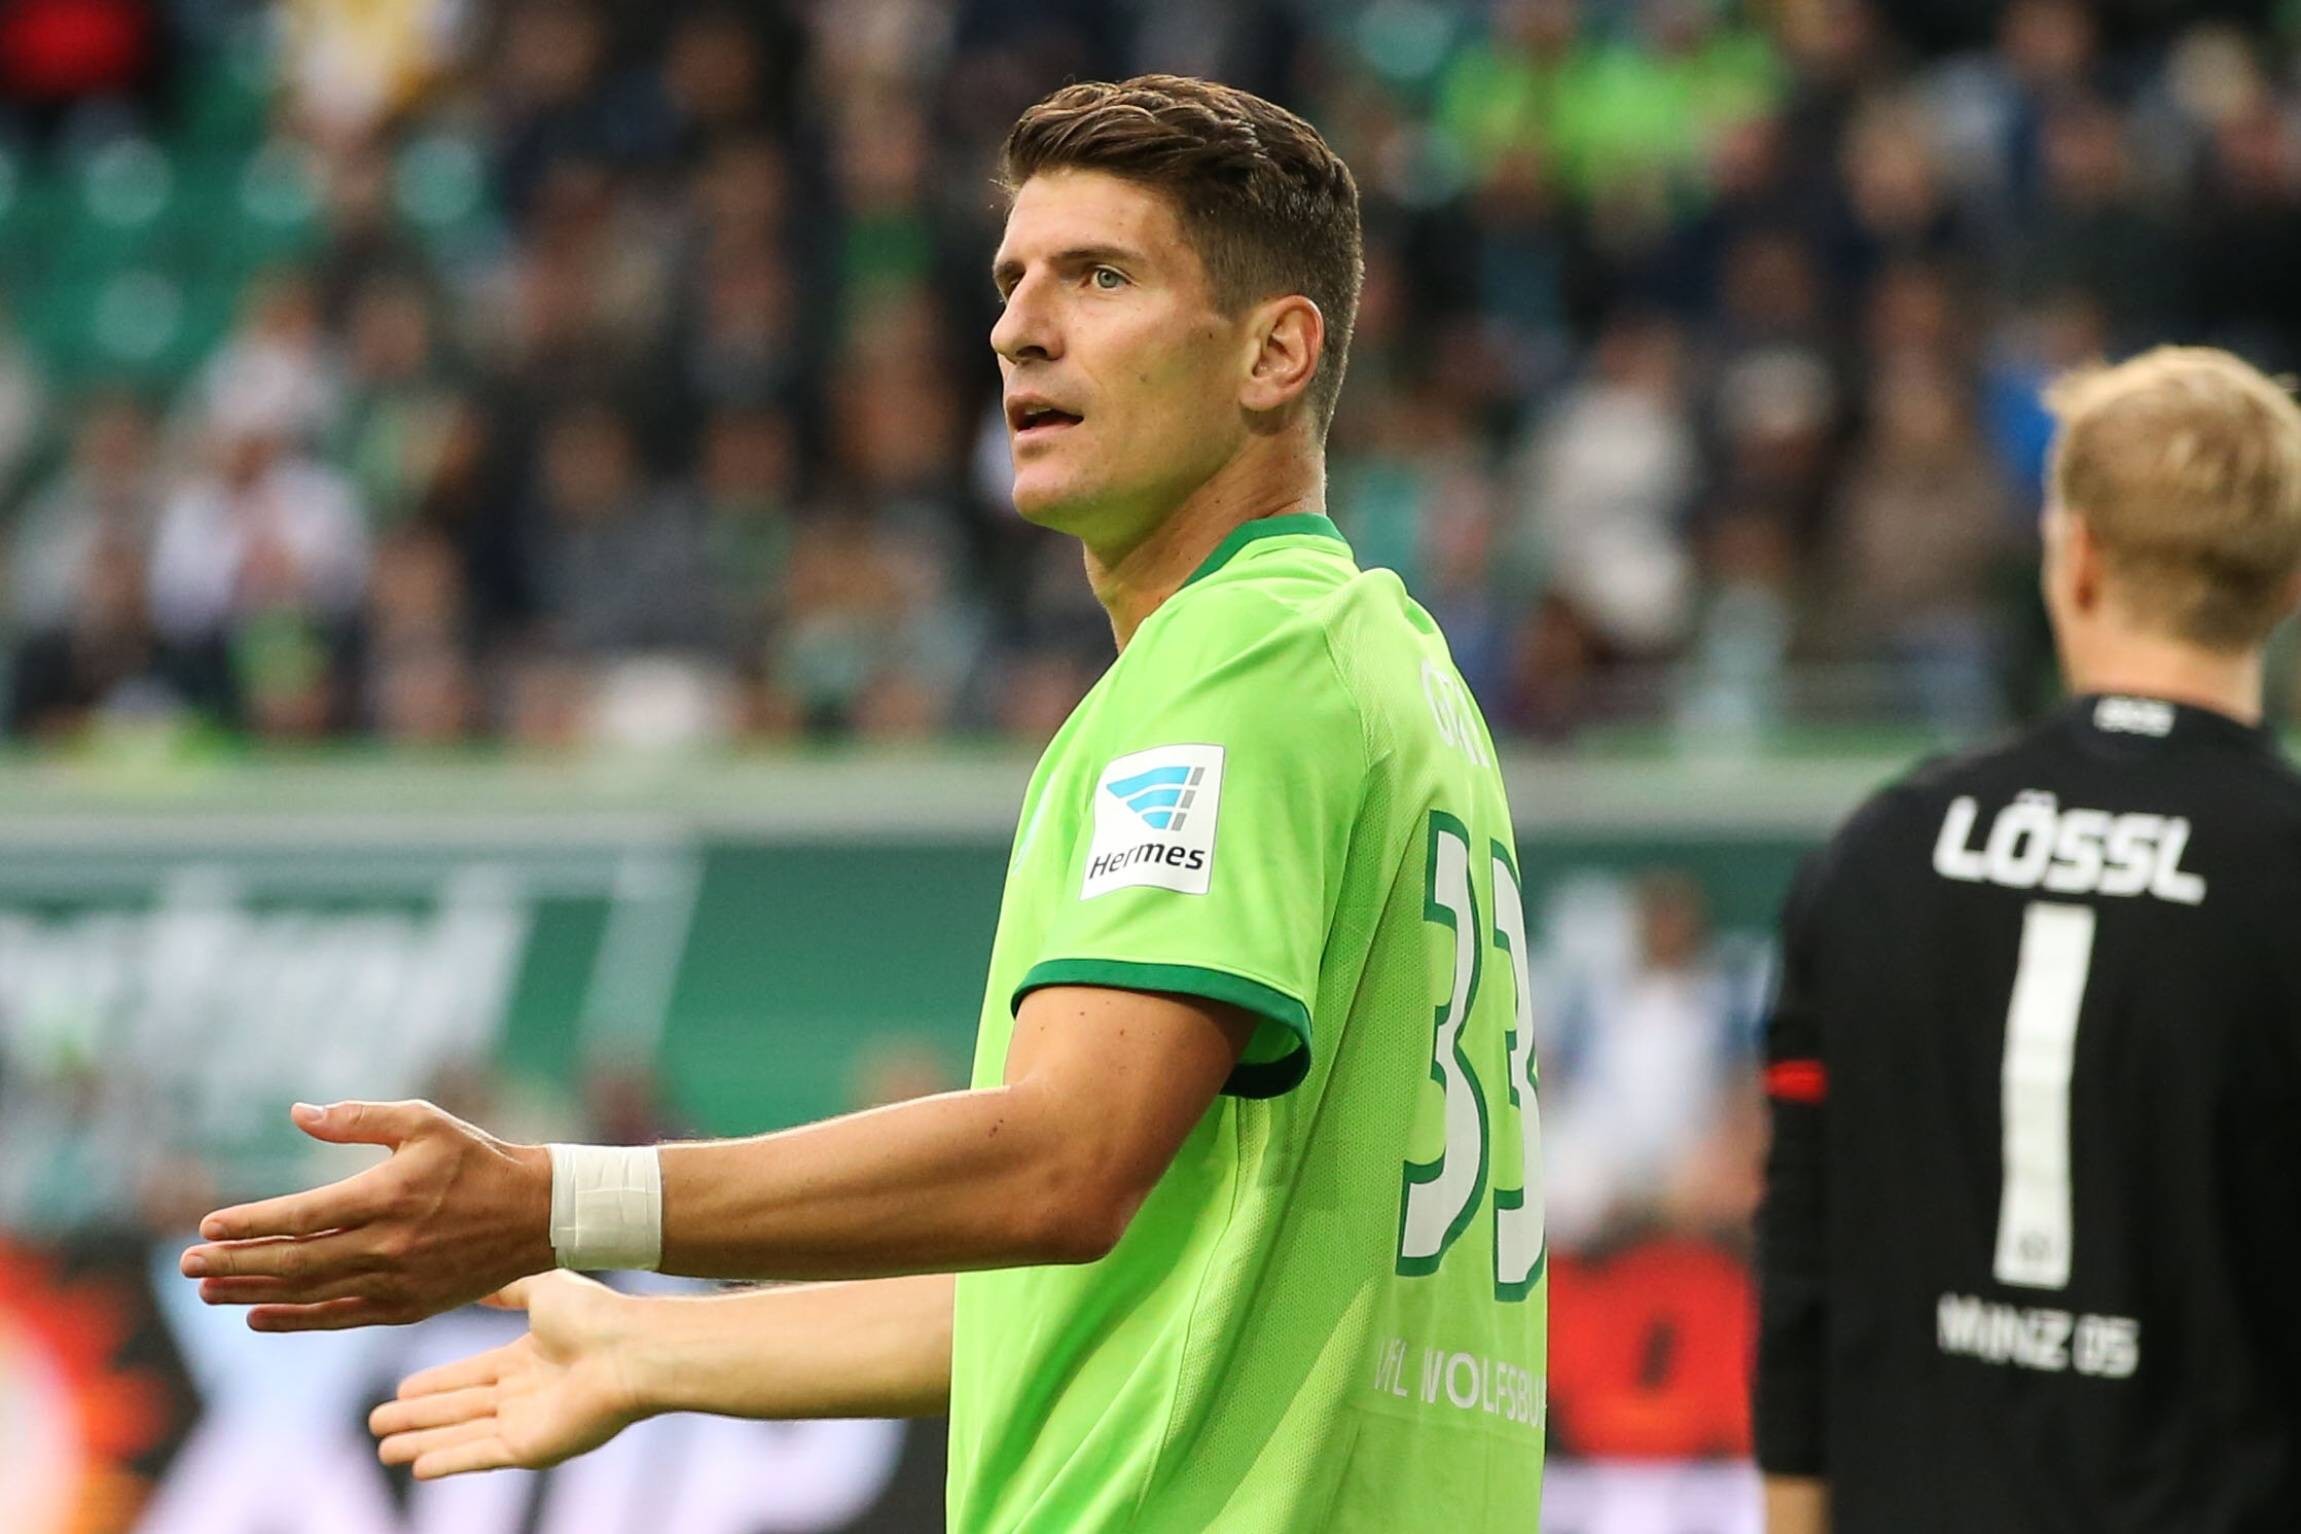 Wolfsburg s Mario Gomez Says Lack of Goals is Due to Bad Luck